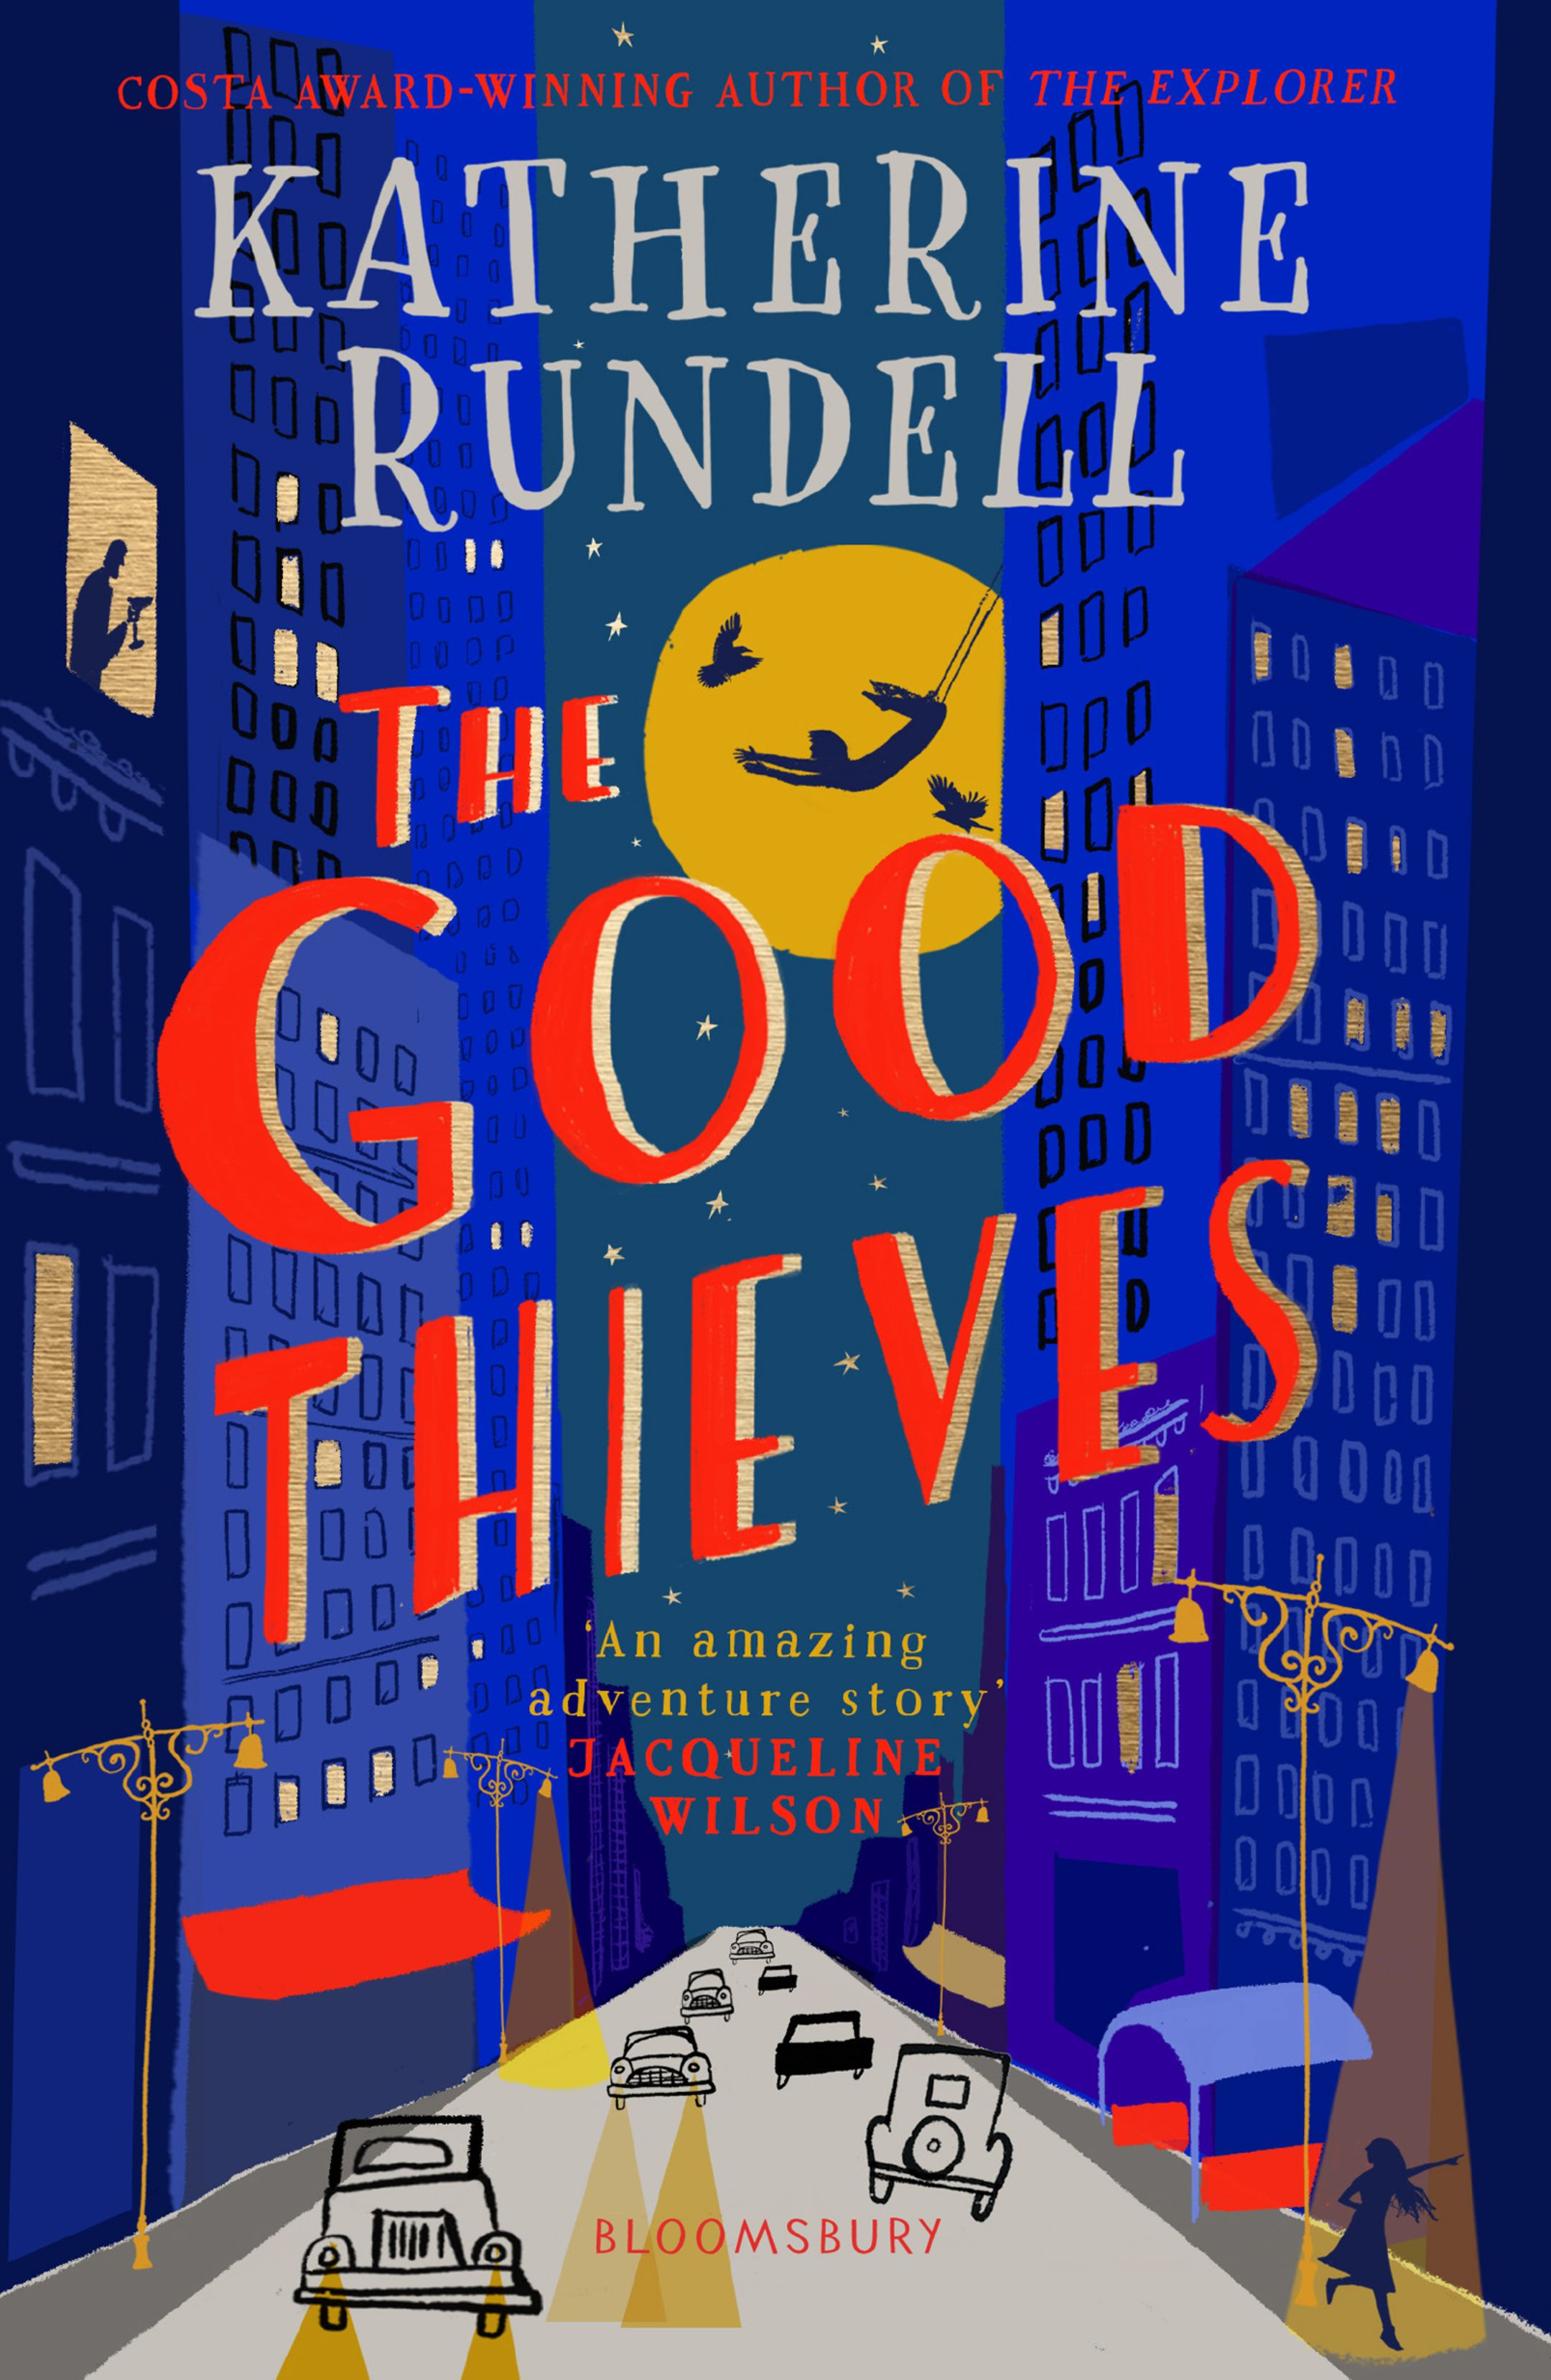 The book cover of The Good Thieves, by Katherine Rundell